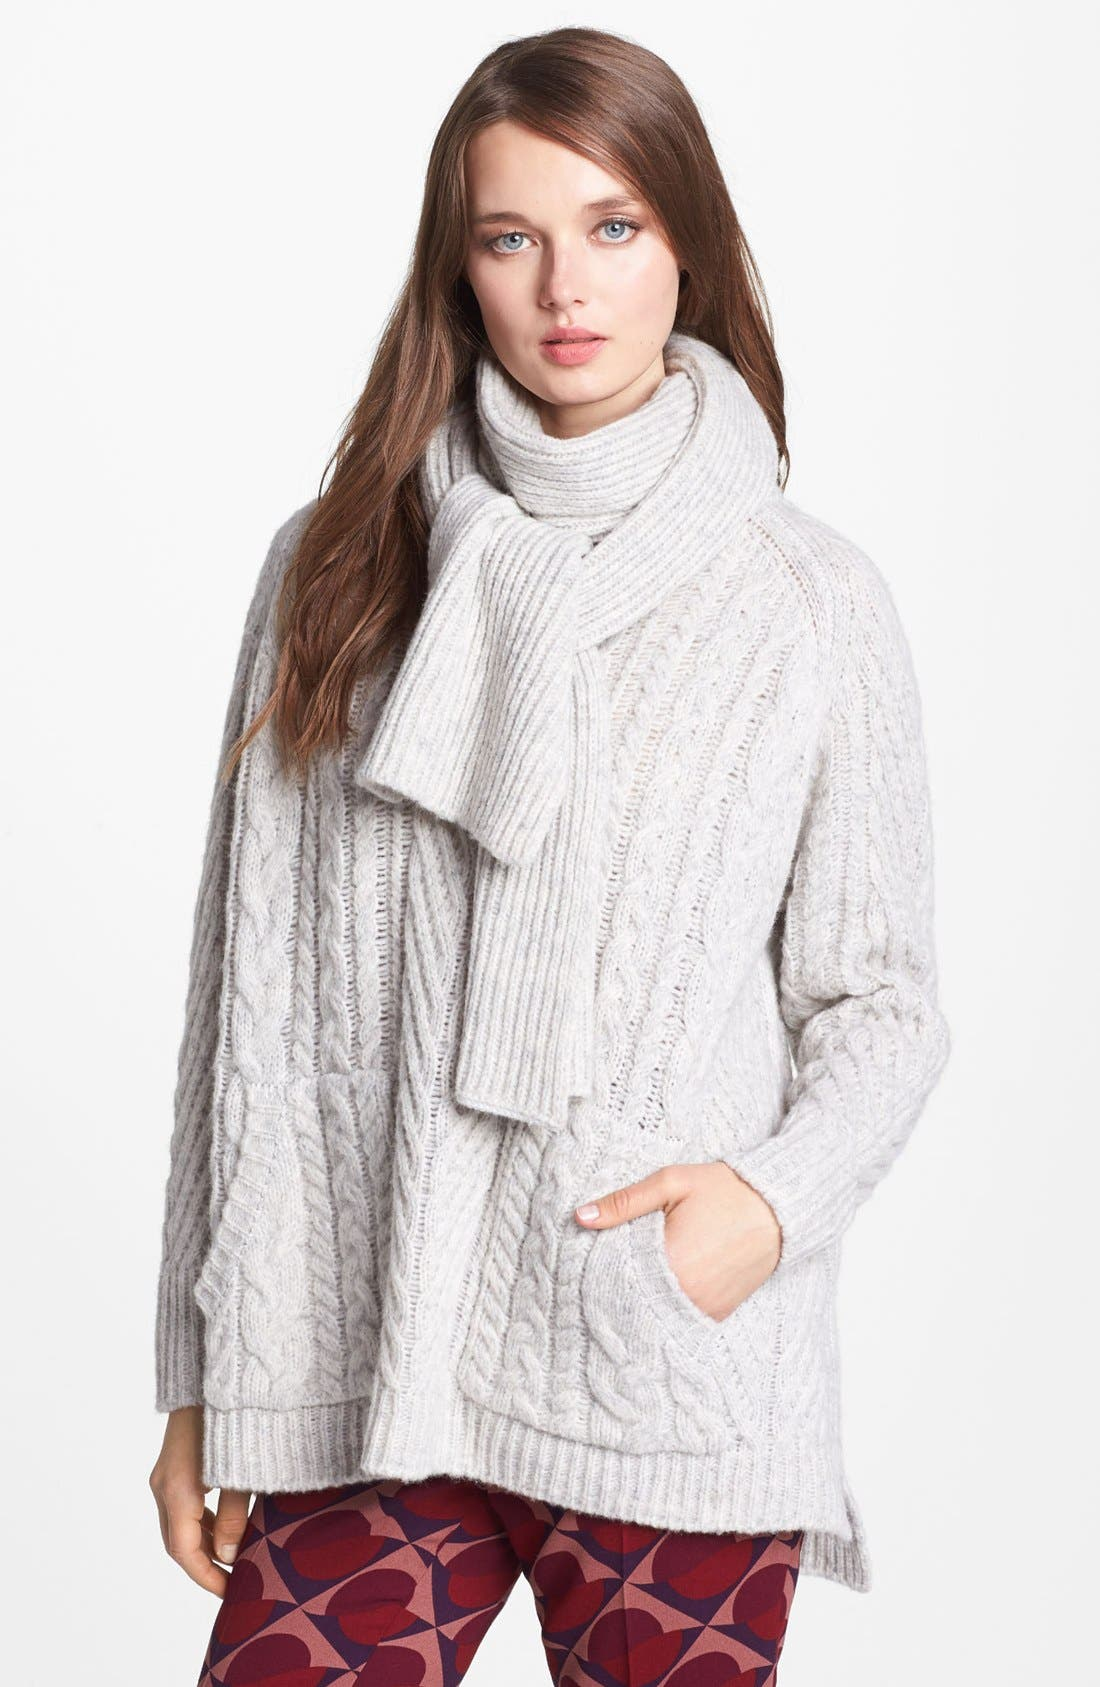 Main Image - MARC BY MARC JACOBS 'Connolly' Crew Neck Sweater with Scarf